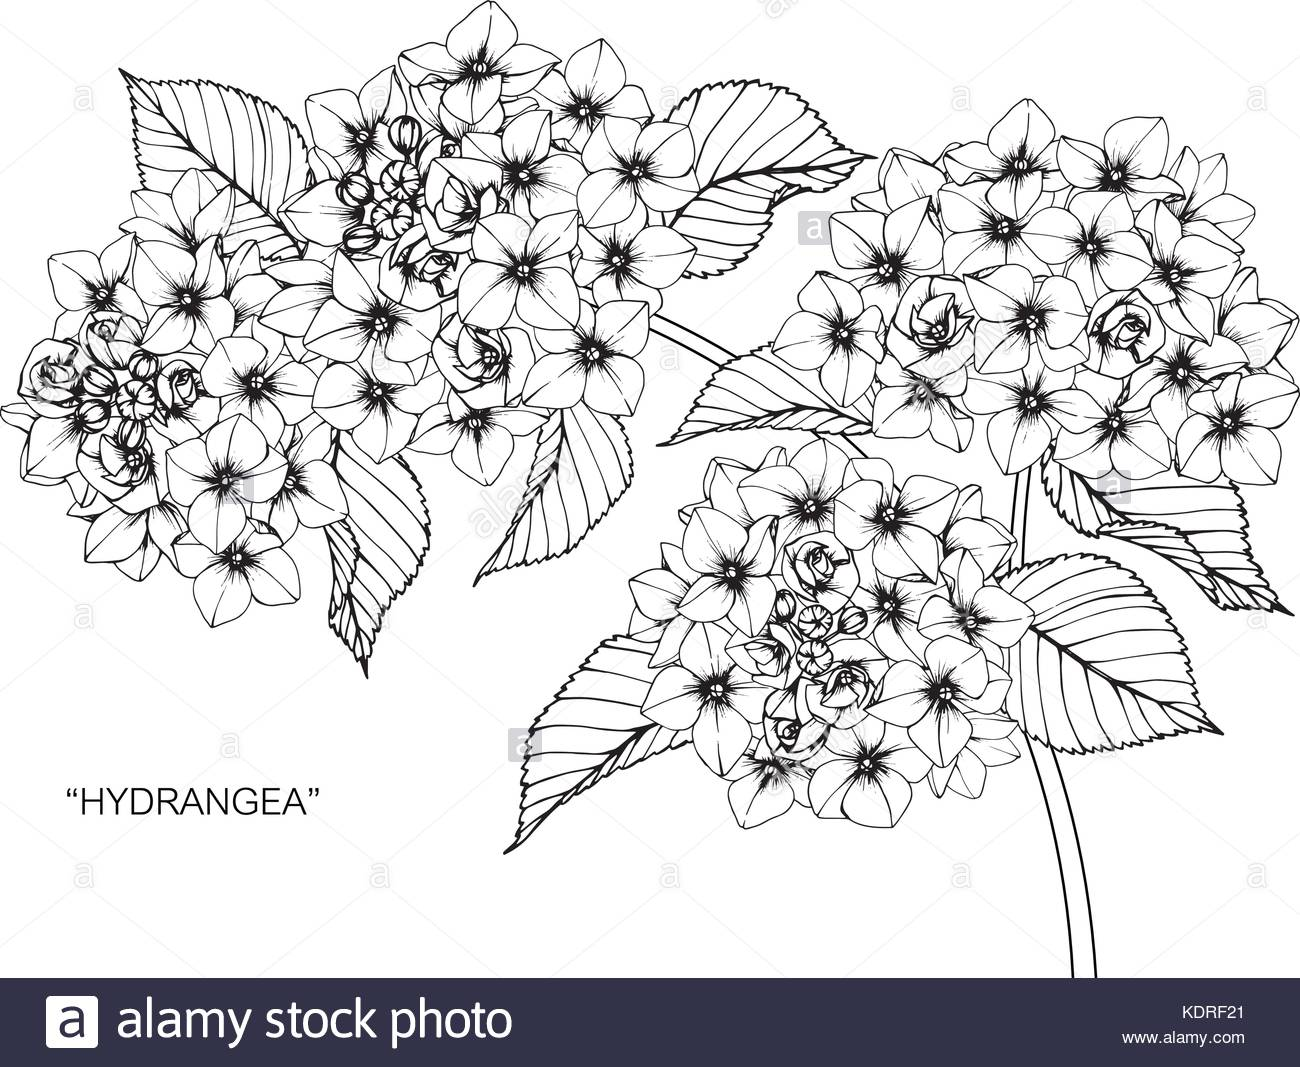 1300x1067 Hydrangea Flower Drawing Illustration. Black And White With Line